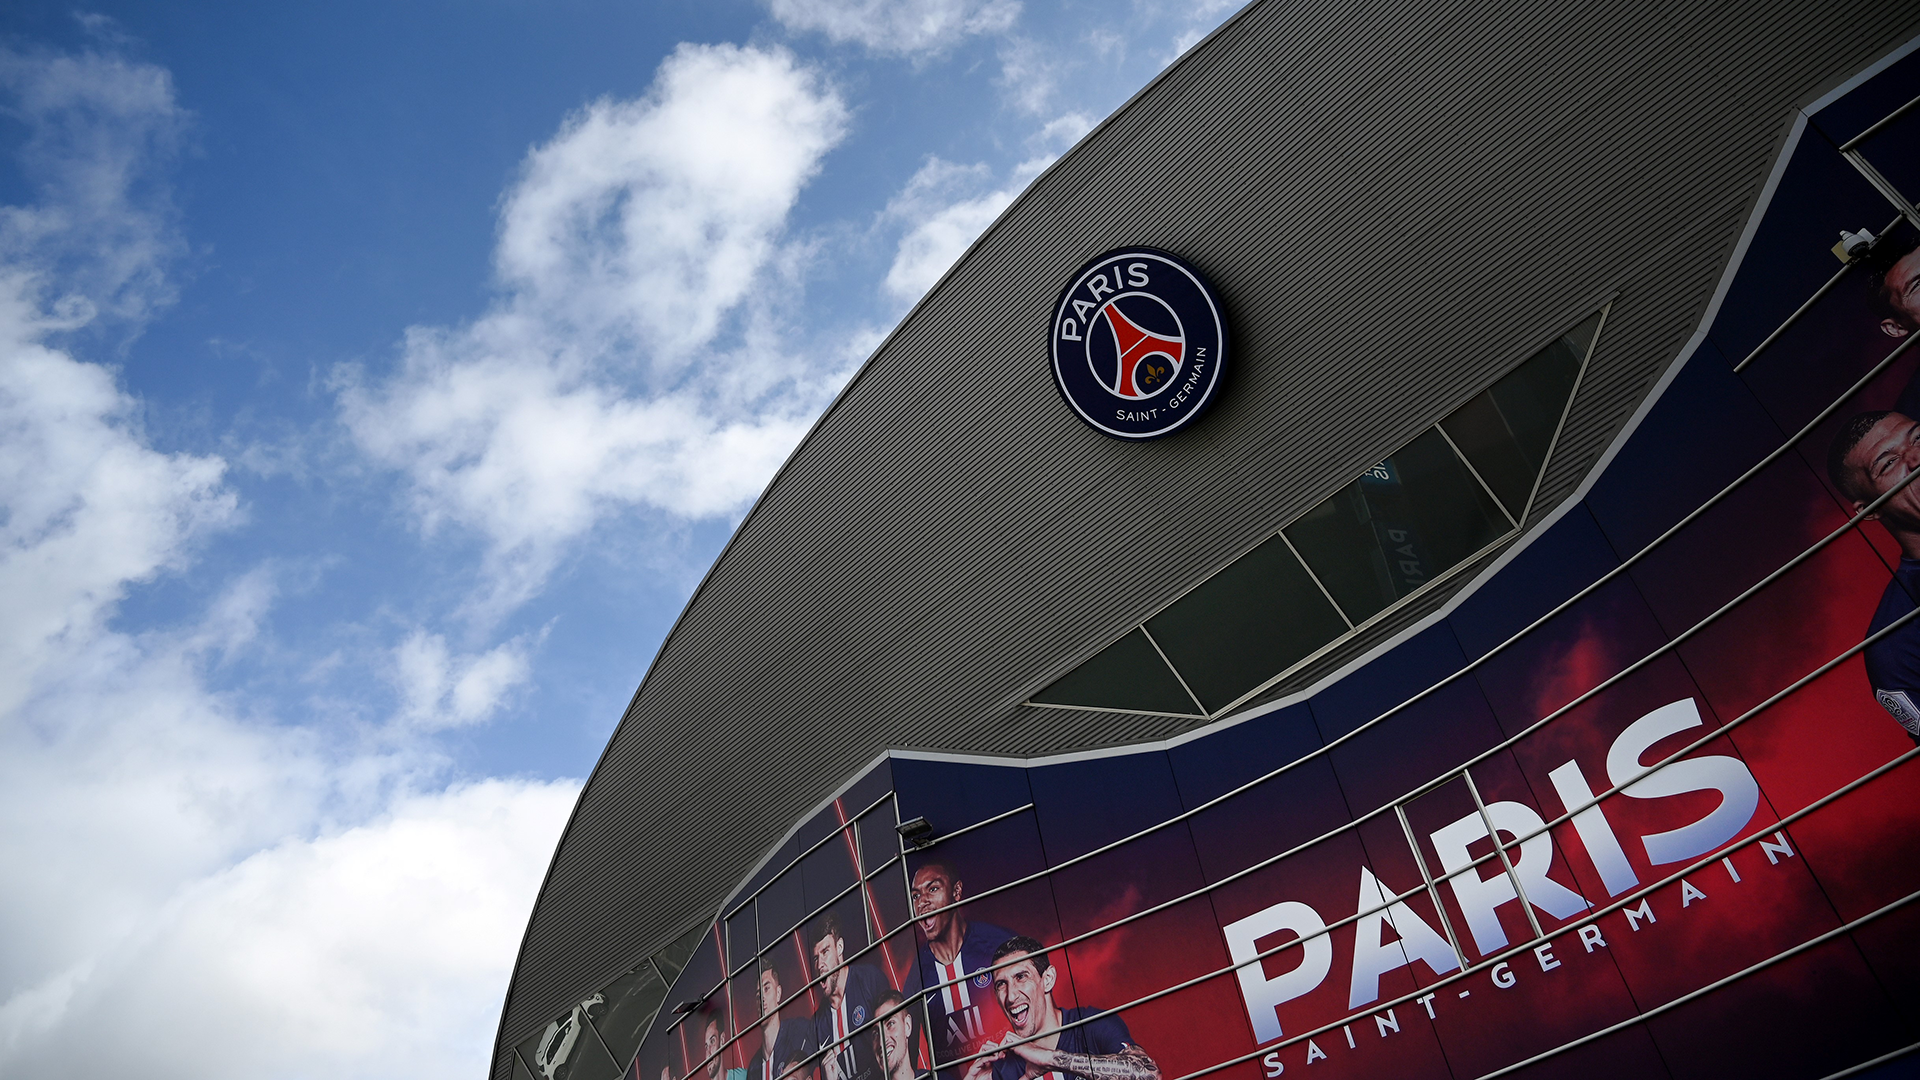 Why are there no fans at the PSG vs Dortmund Champions League match?